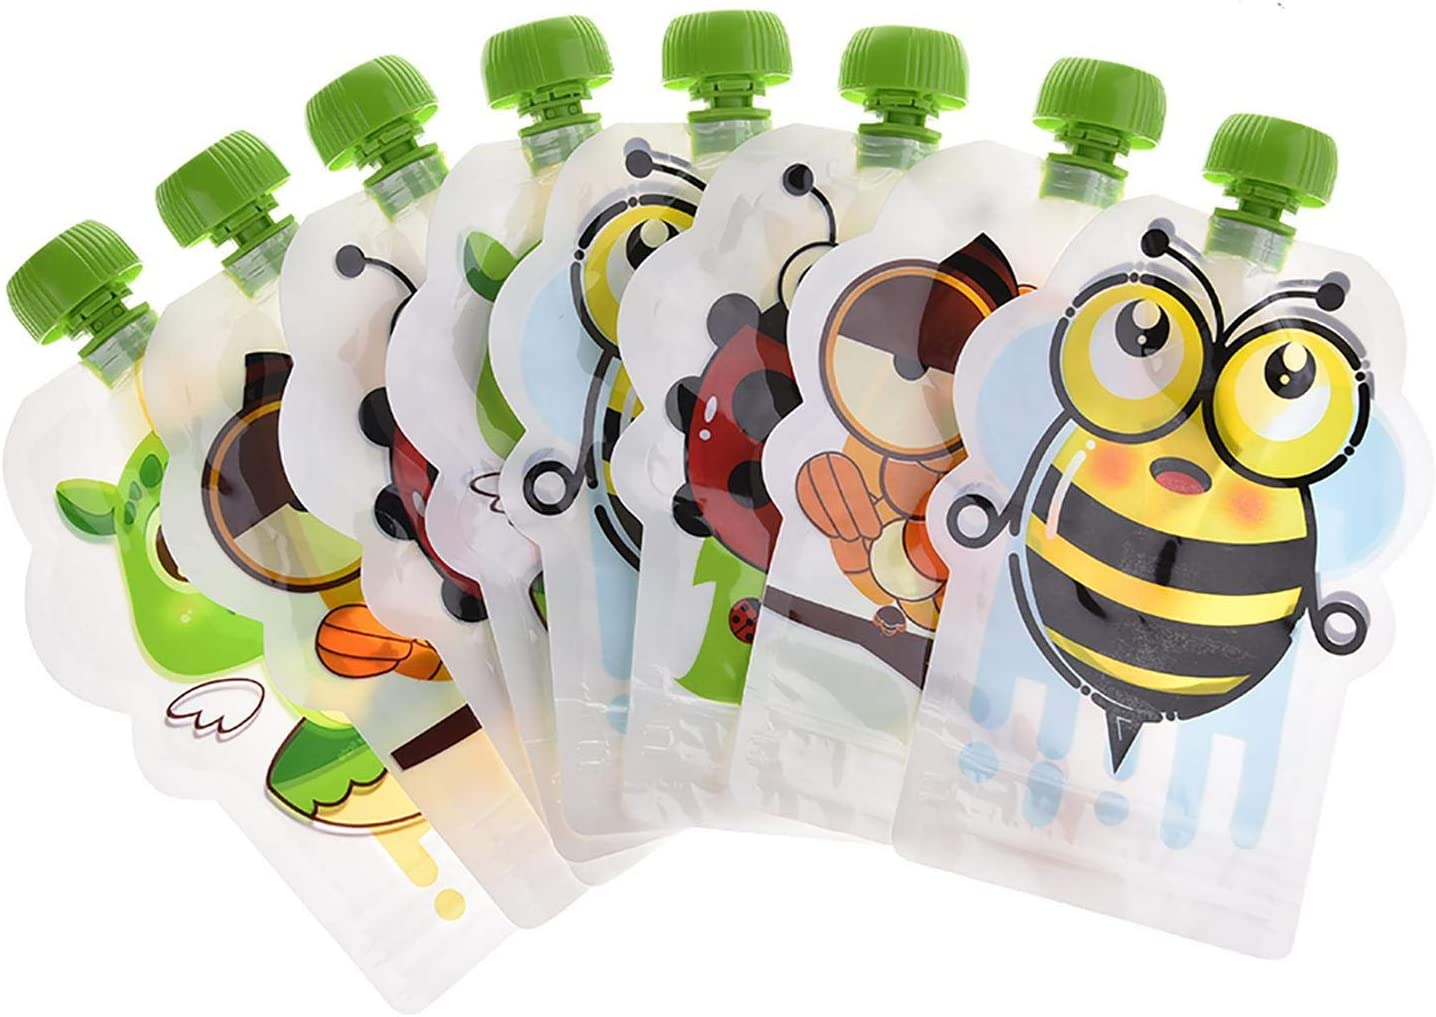 DealmerryUS 8 Pcs 150ml Reusable Baby Food Squeeze Storage Pouches,BPA-Free Reusable Sealed Complementary Food Pouch Storage Bag Great for Kids and DIY Homemade Organic Puree